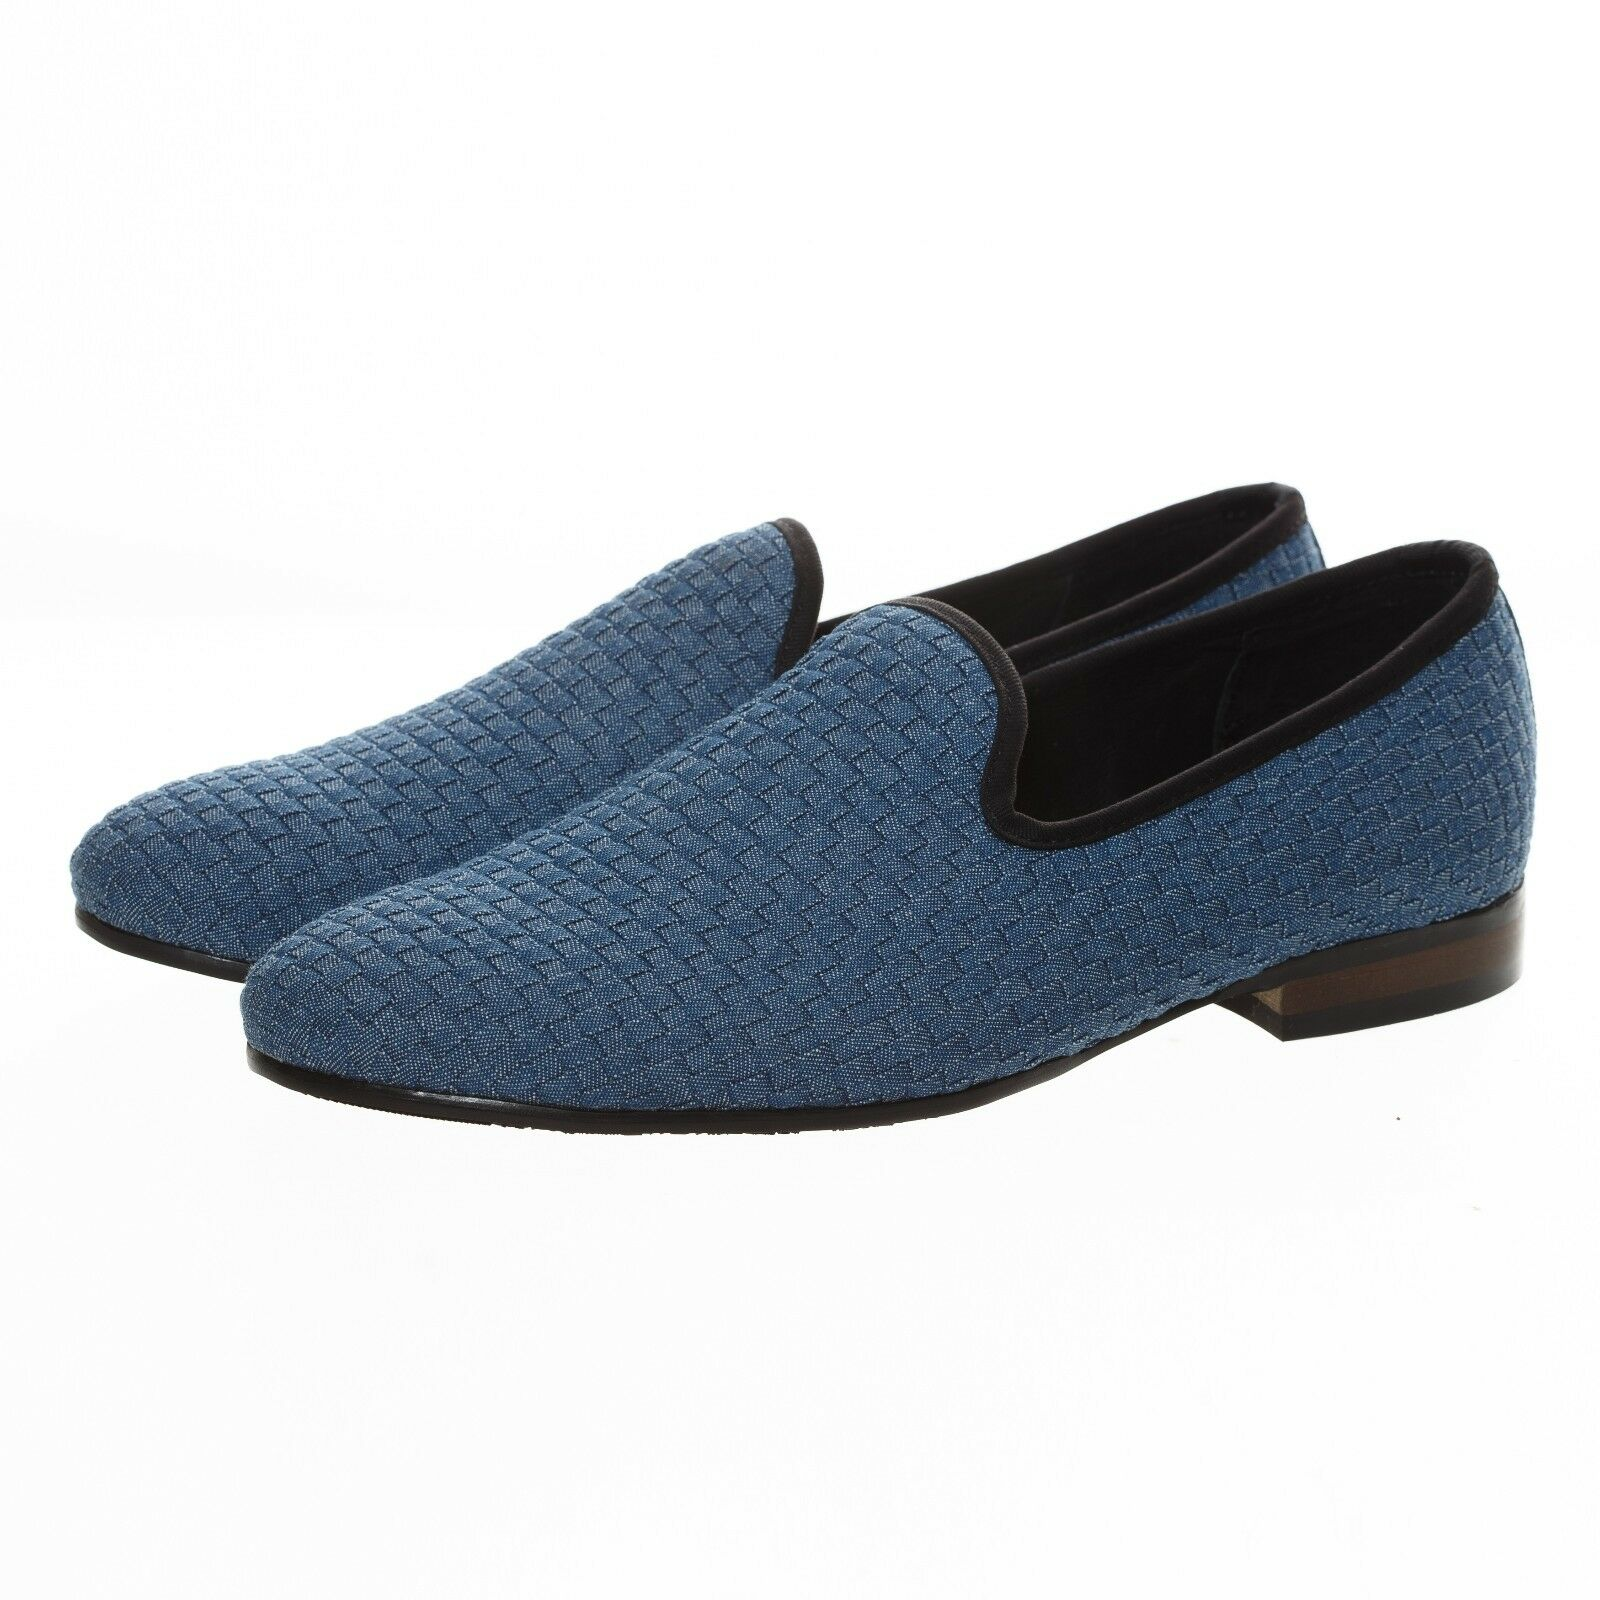 Handmade Mens bluee Woven Casual shoes Leather Loafers Slip on Slippers Flats New